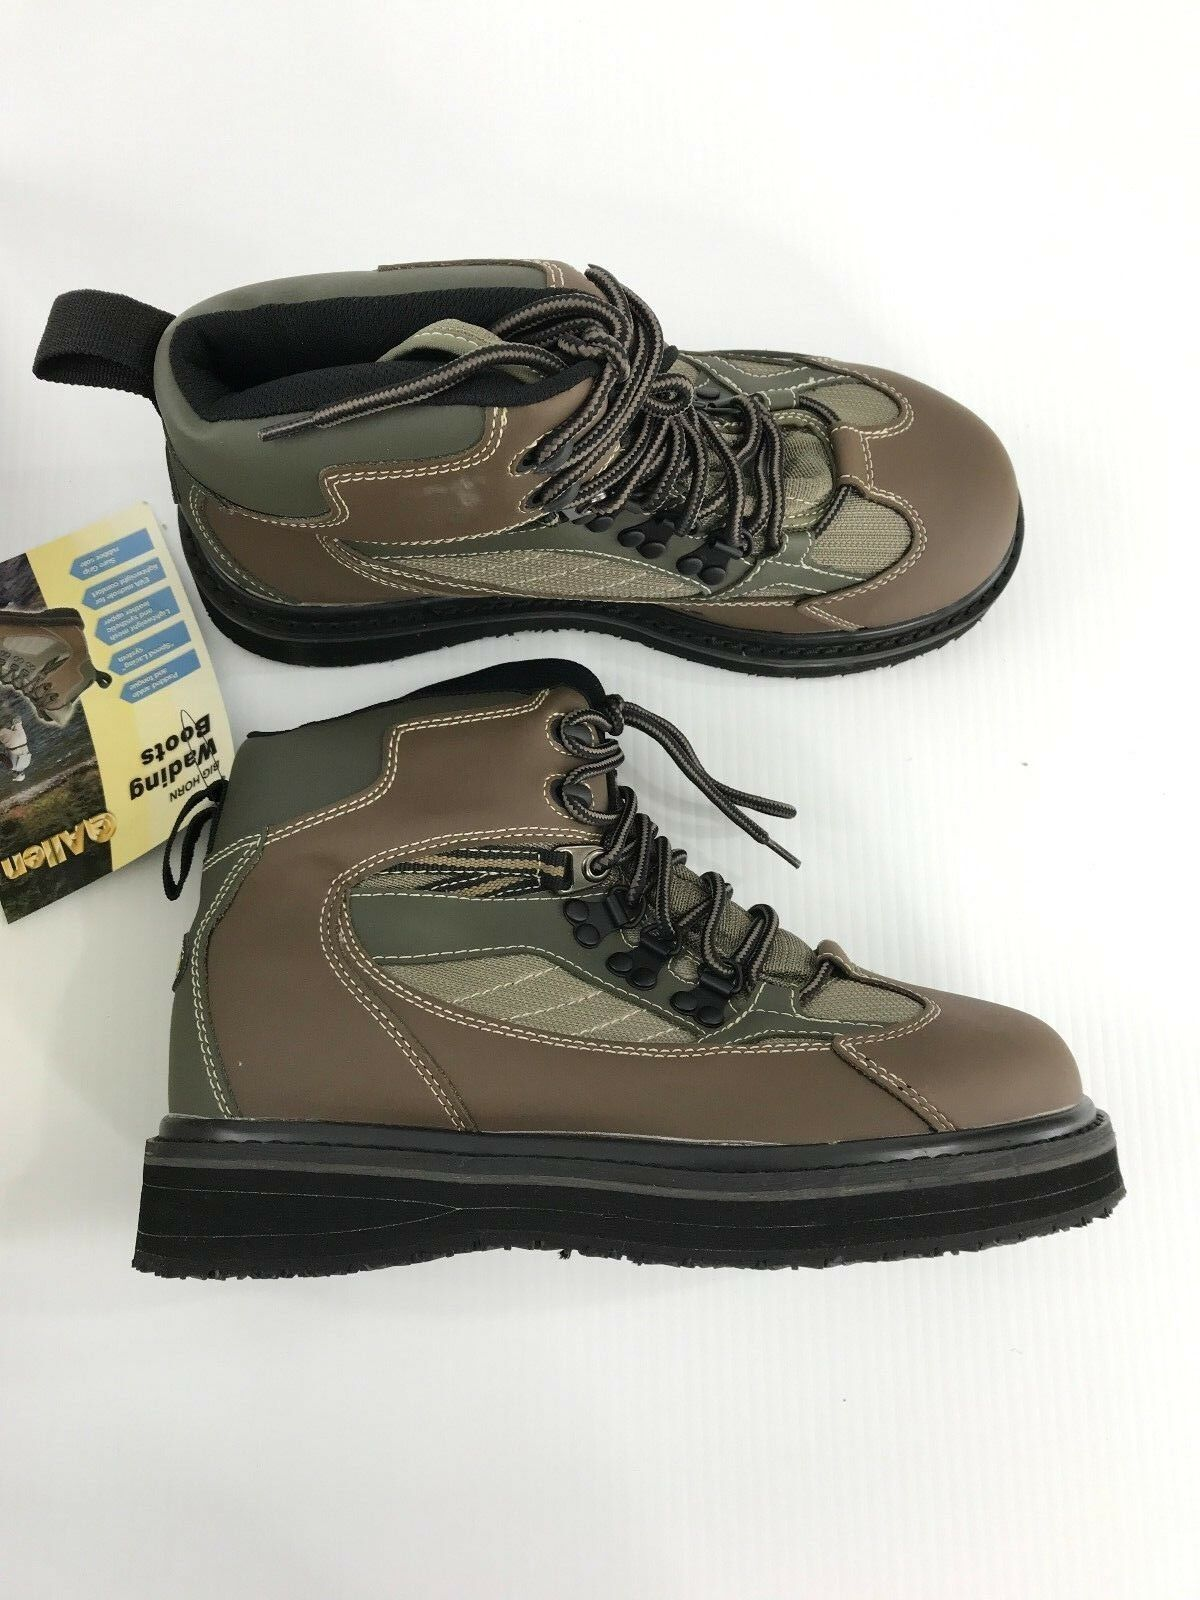 Allen Big  Horn Fishing Wading Boot shoes NEW Mens Sizes 4, 5 & 8 Model A15675  hottest new styles